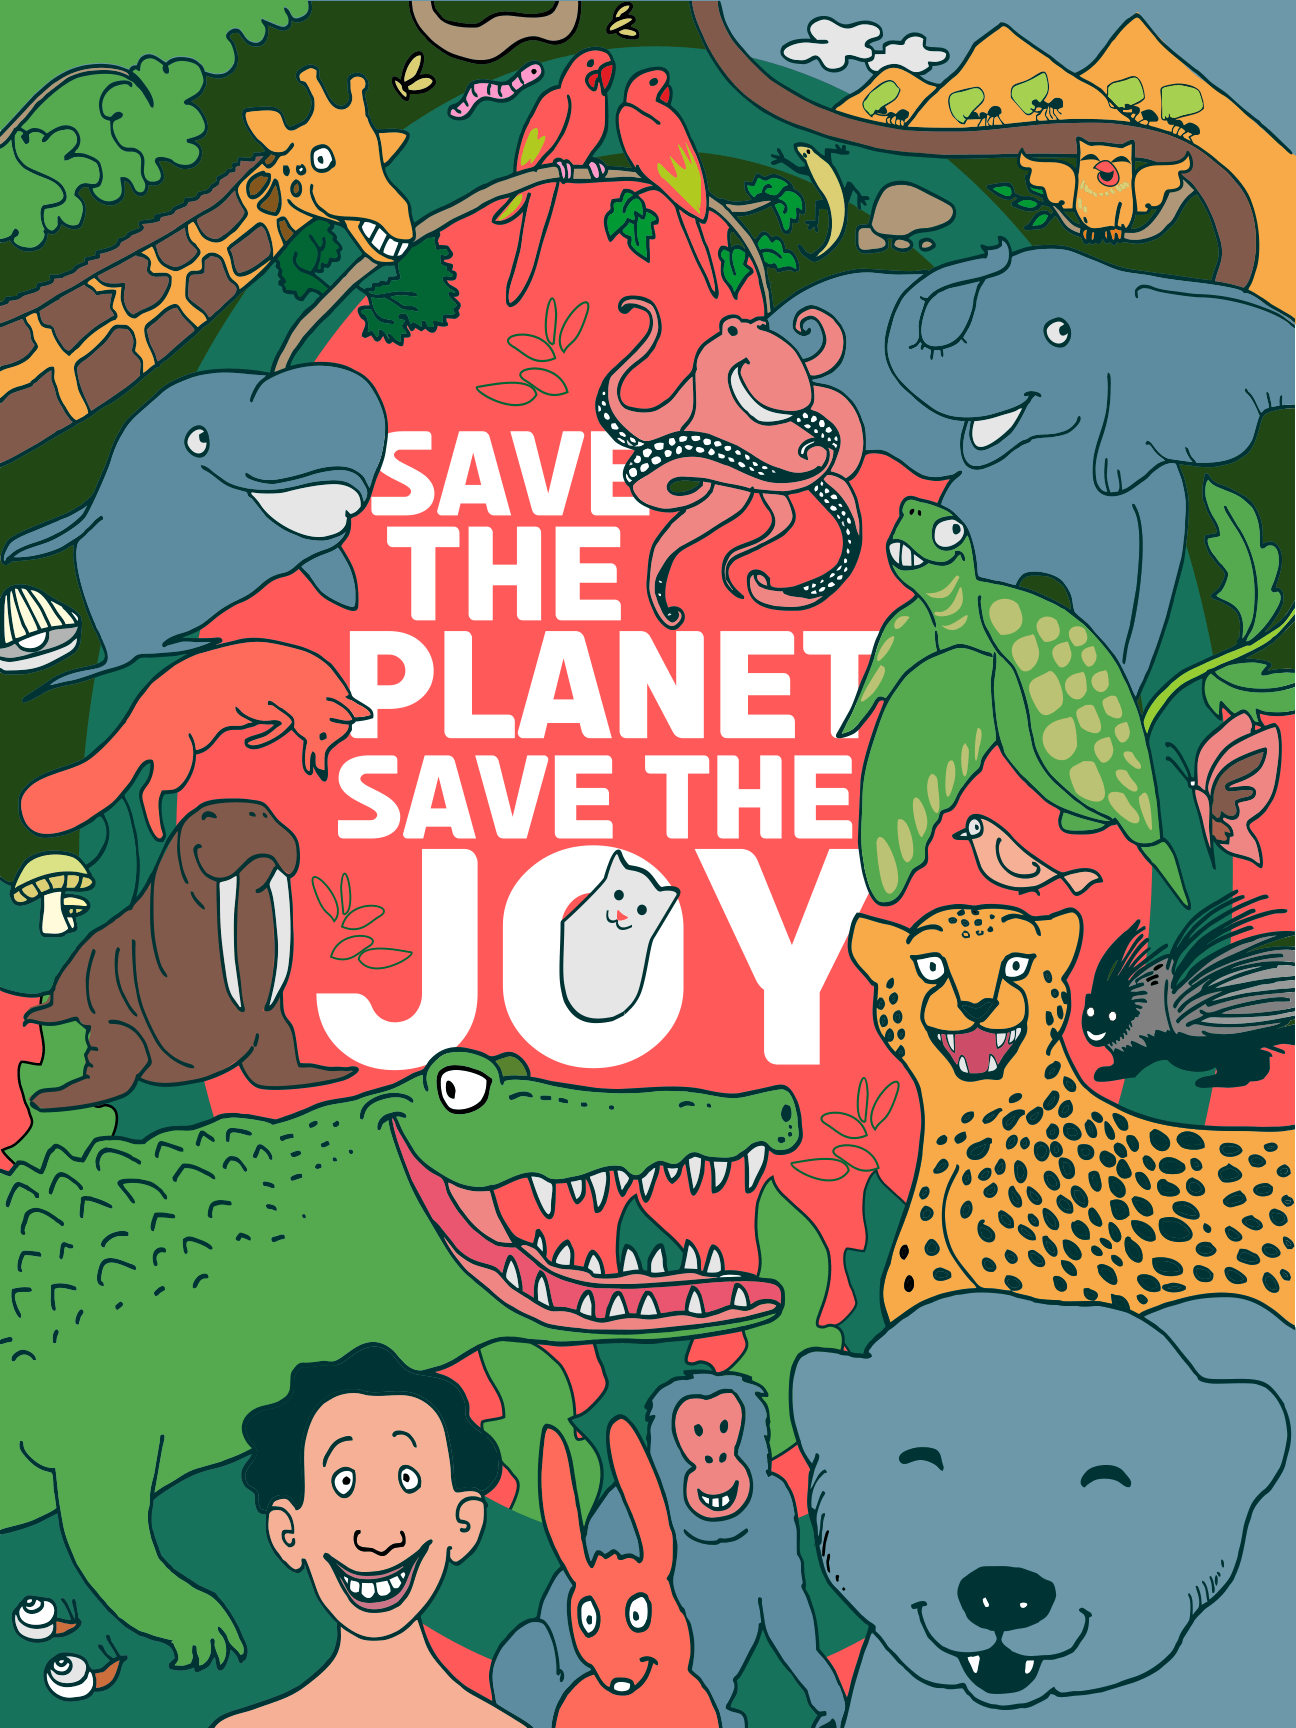 Save The Planet, Save The Joy main image